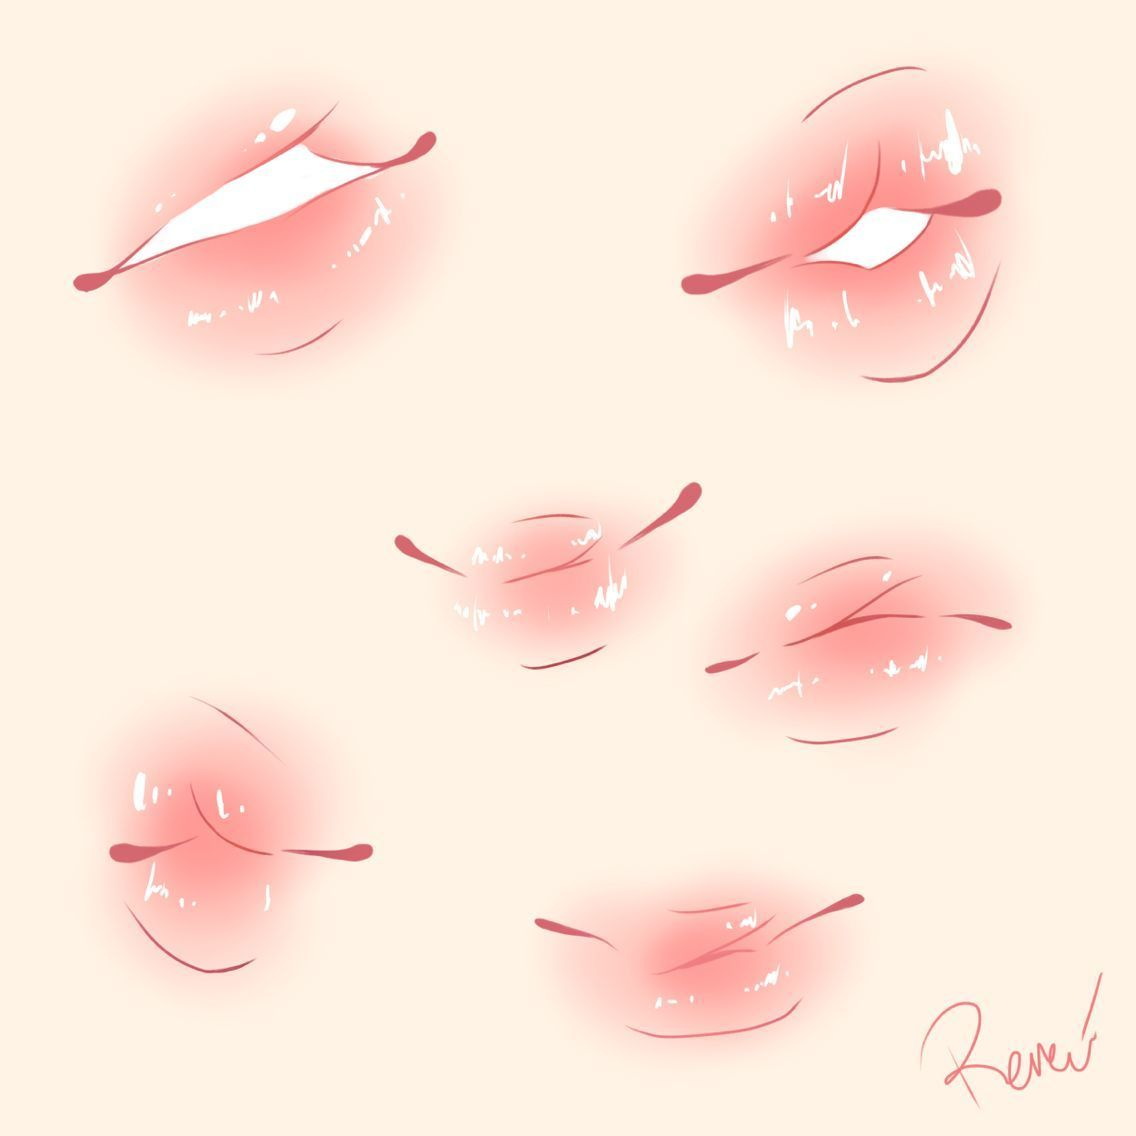 Plump Lips Cute Colouring Draw Lips Draw Lips Figure Drawing Anatomy Reference Action Poses In 2020 Lips Drawing Art Reference Photos Drawing Expressions